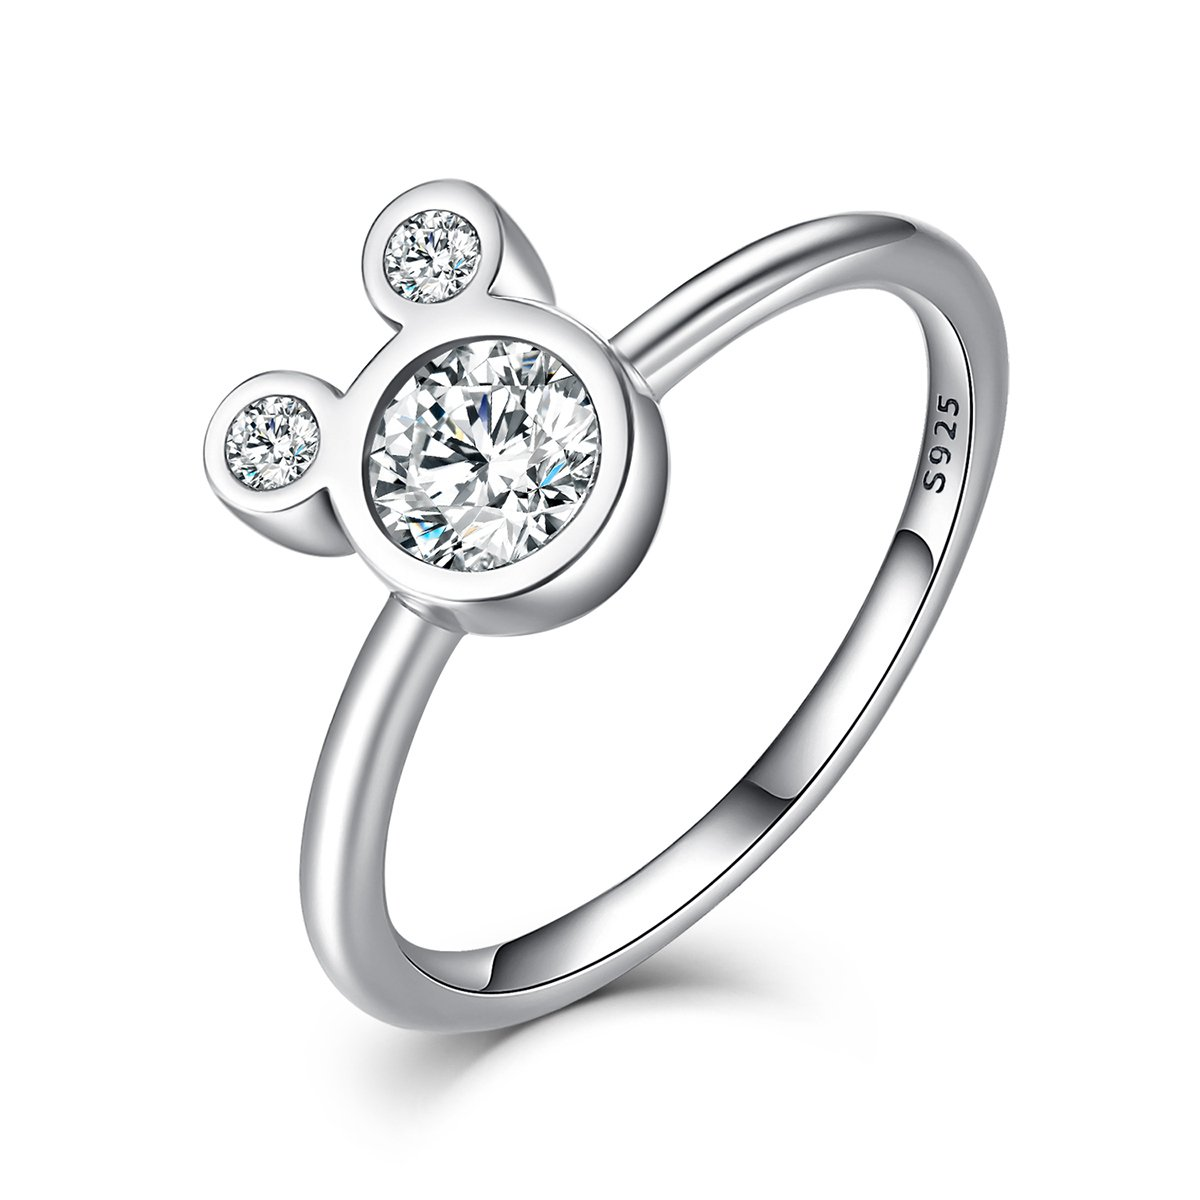 BISAER Women's Mick Mini Mouse Rings Sterling Silver Plated Cubic Zirconia Cartoon Mini Mouse Silver Rings For Women Girl Party Jewelry (6)